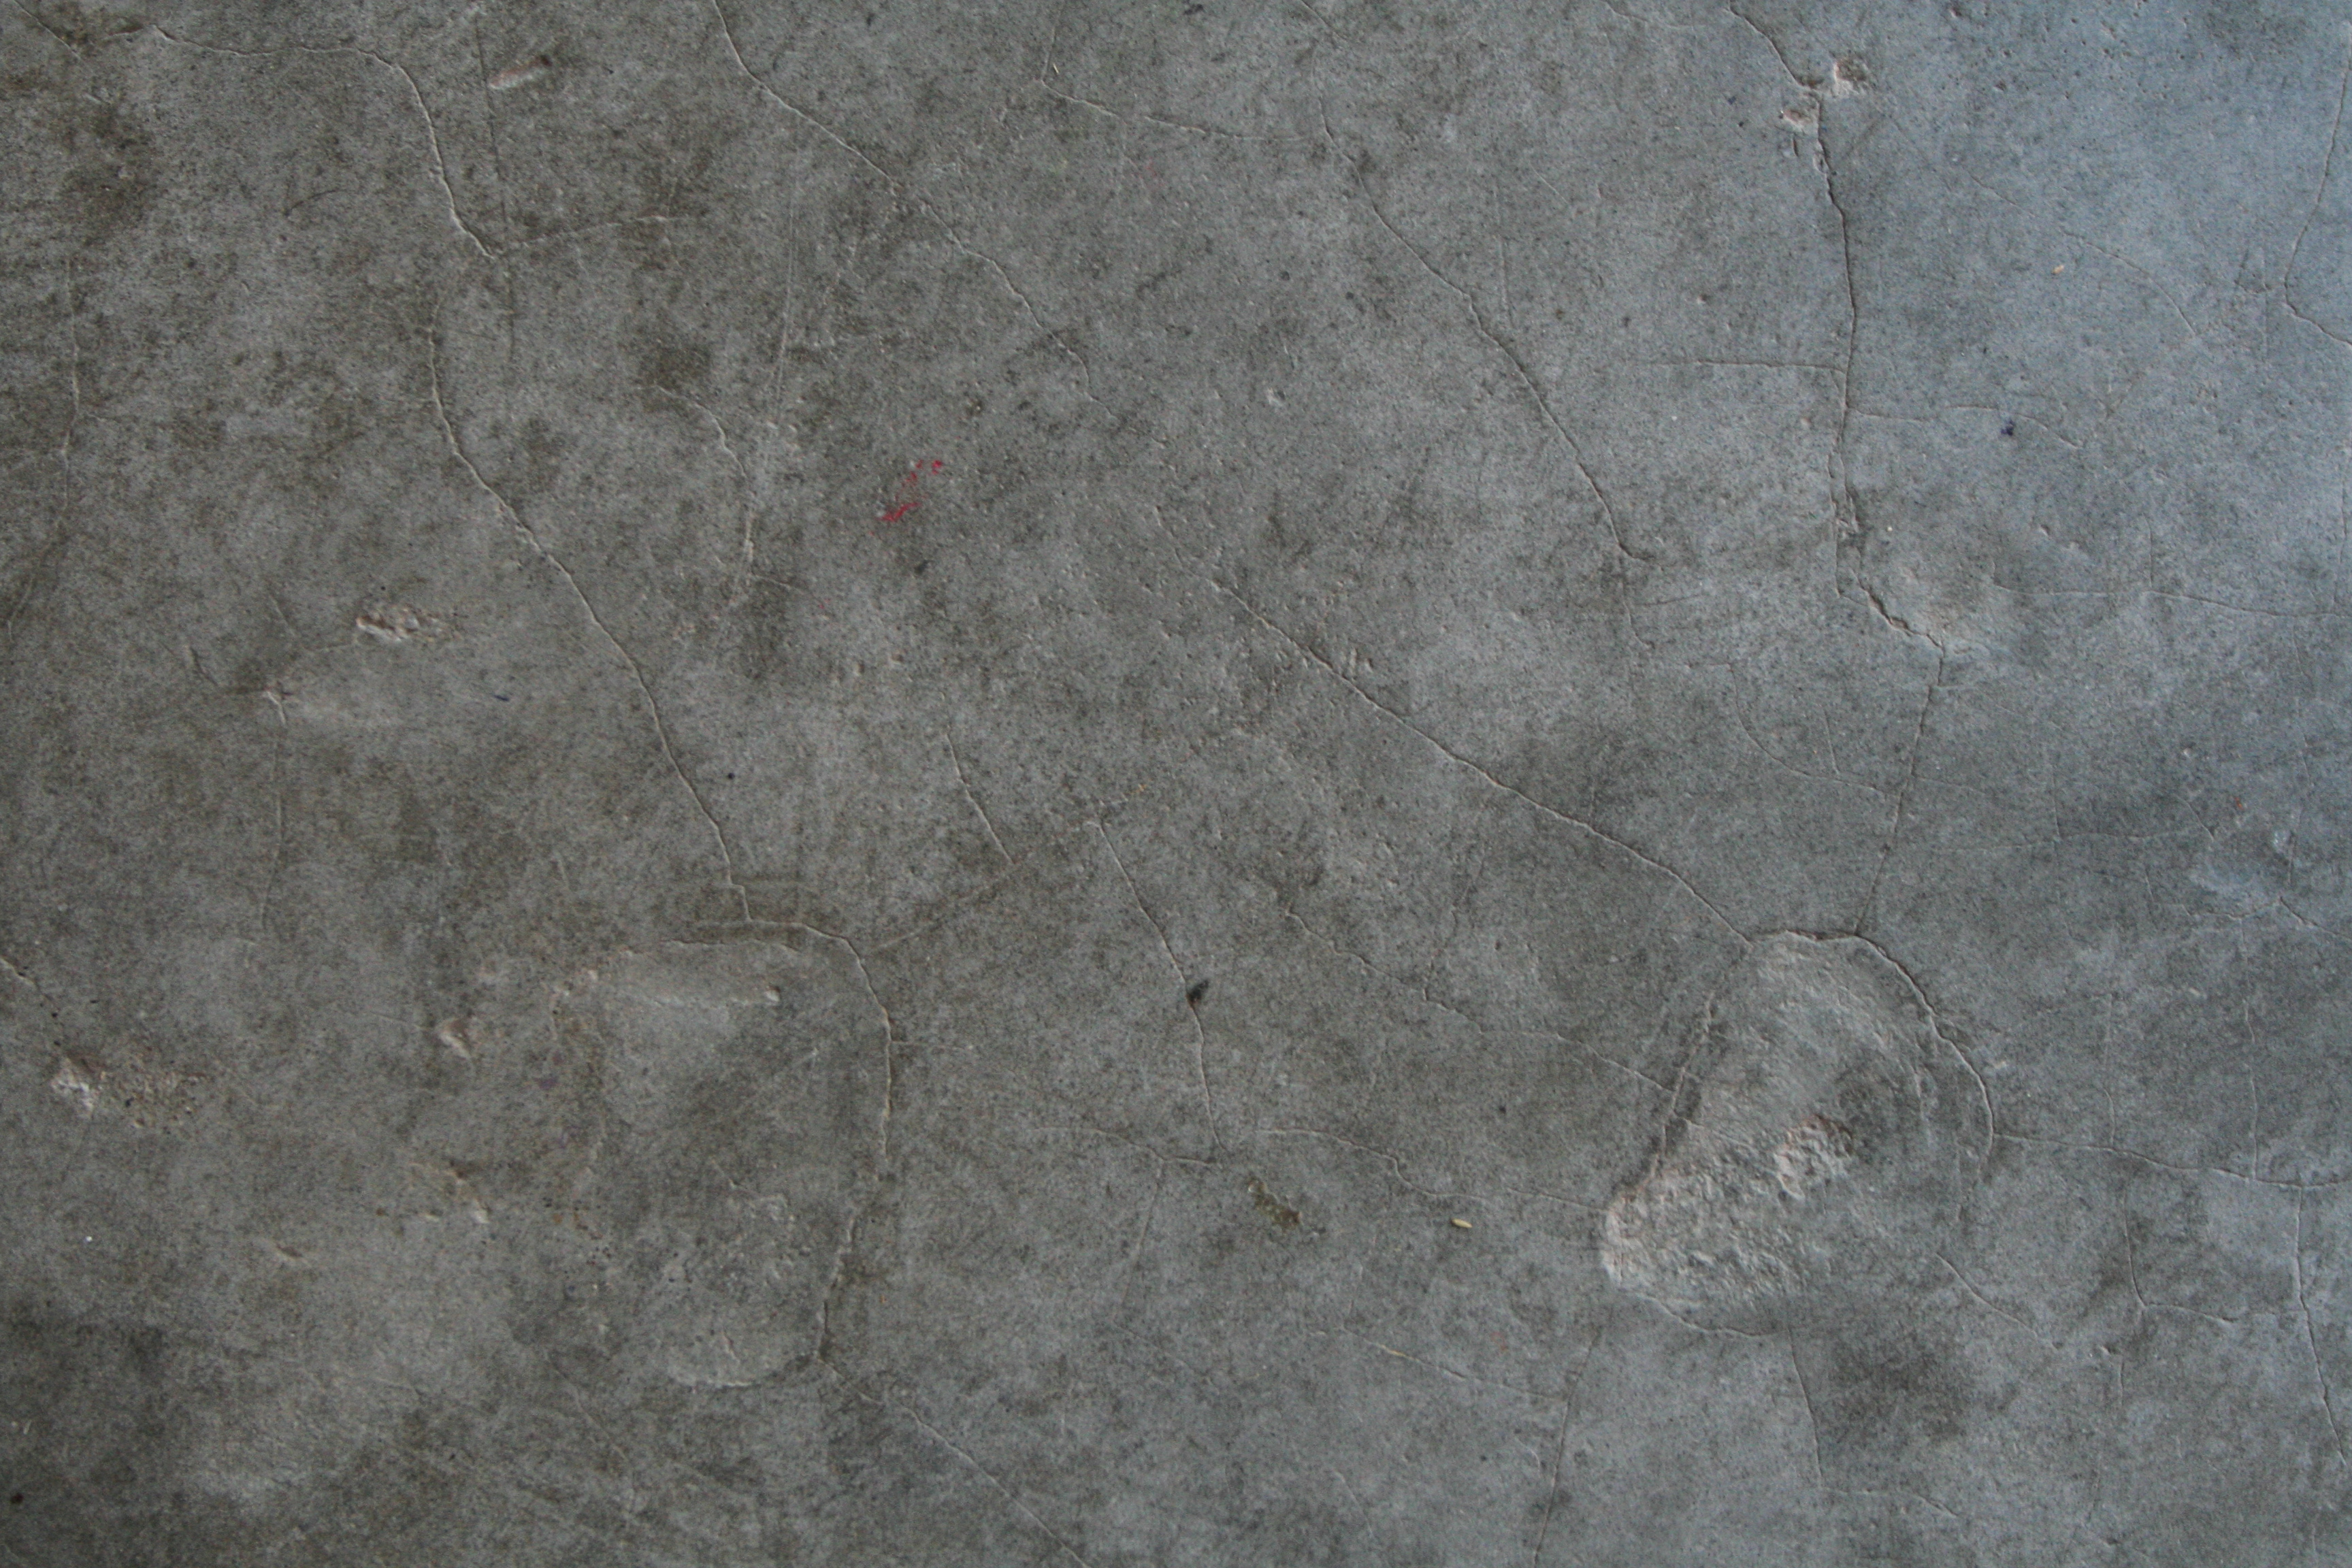 20 Grey Concrete Texture | Textures for photoshop free